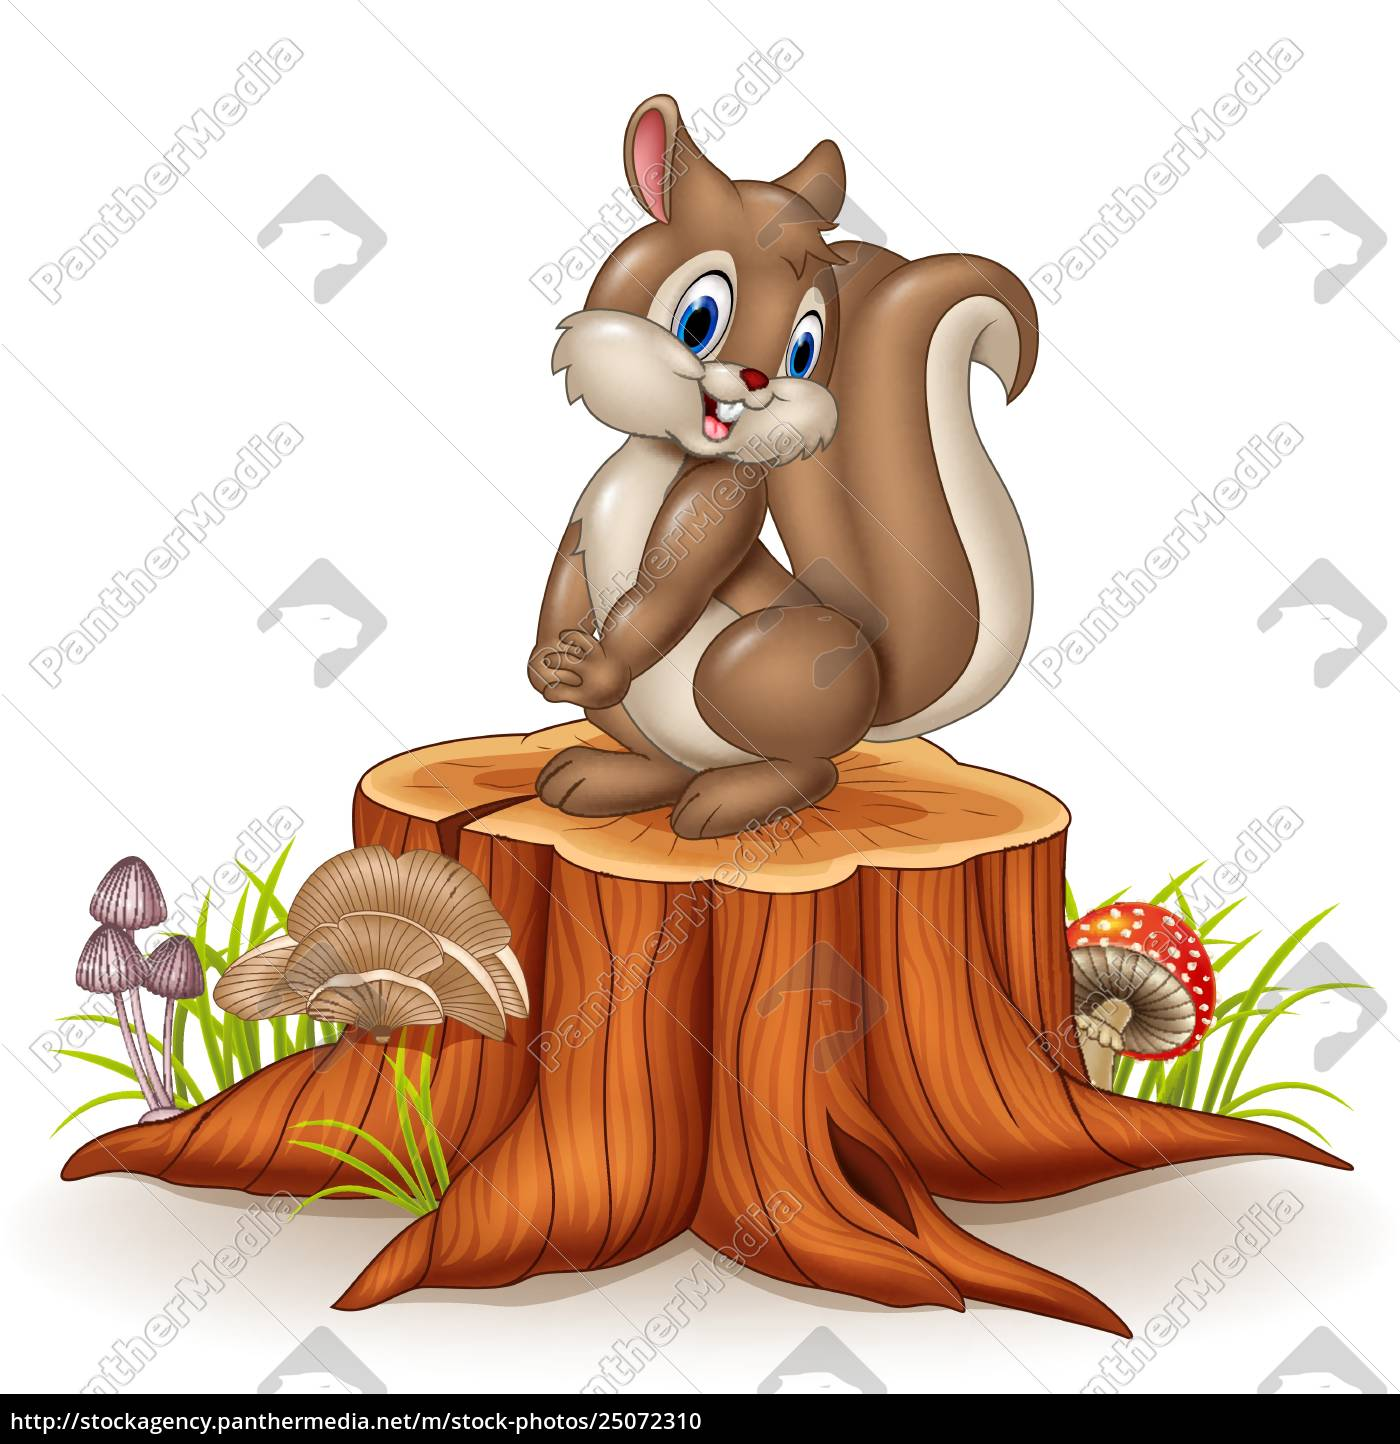 Cartoon Funny Squirrel On Tree Stump Stock Image 25072310 Panthermedia Stock Agency The best selection of royalty free tree stump cartoon vector art, graphics and stock illustrations. https stockagency panthermedia net m stock photos 25072310 cartoon funny squirrel on tree stump